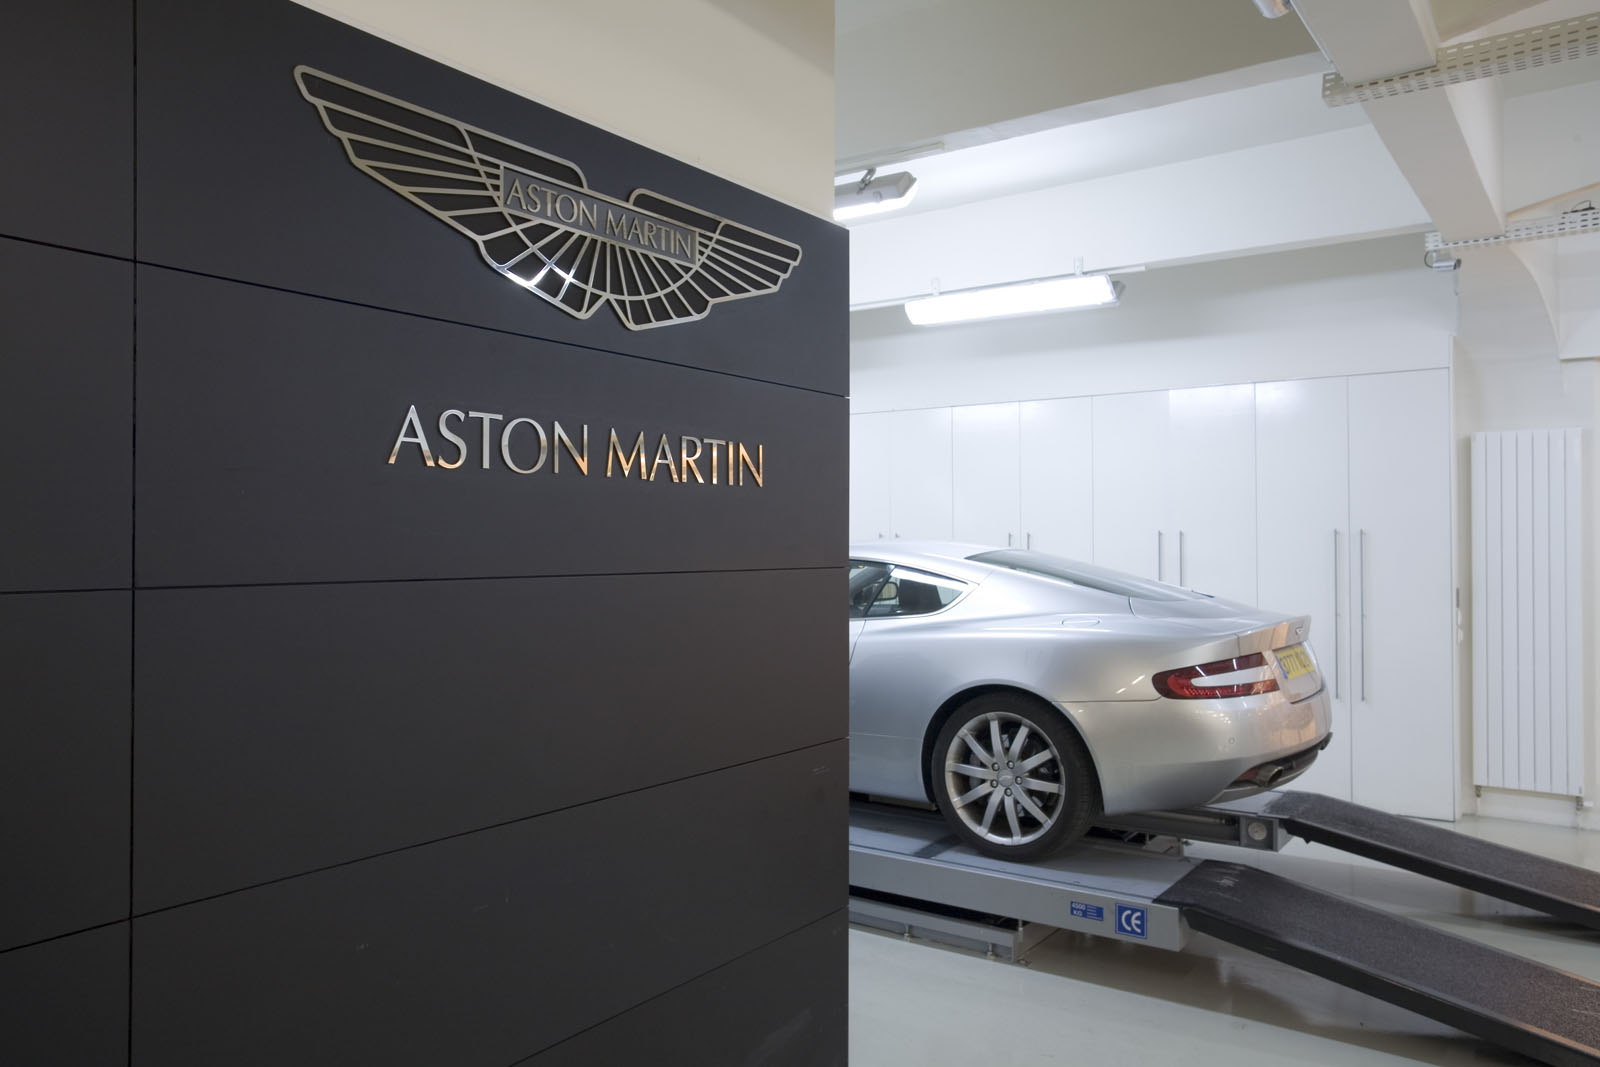 pr sentation de la soci t aston martin paris. Black Bedroom Furniture Sets. Home Design Ideas